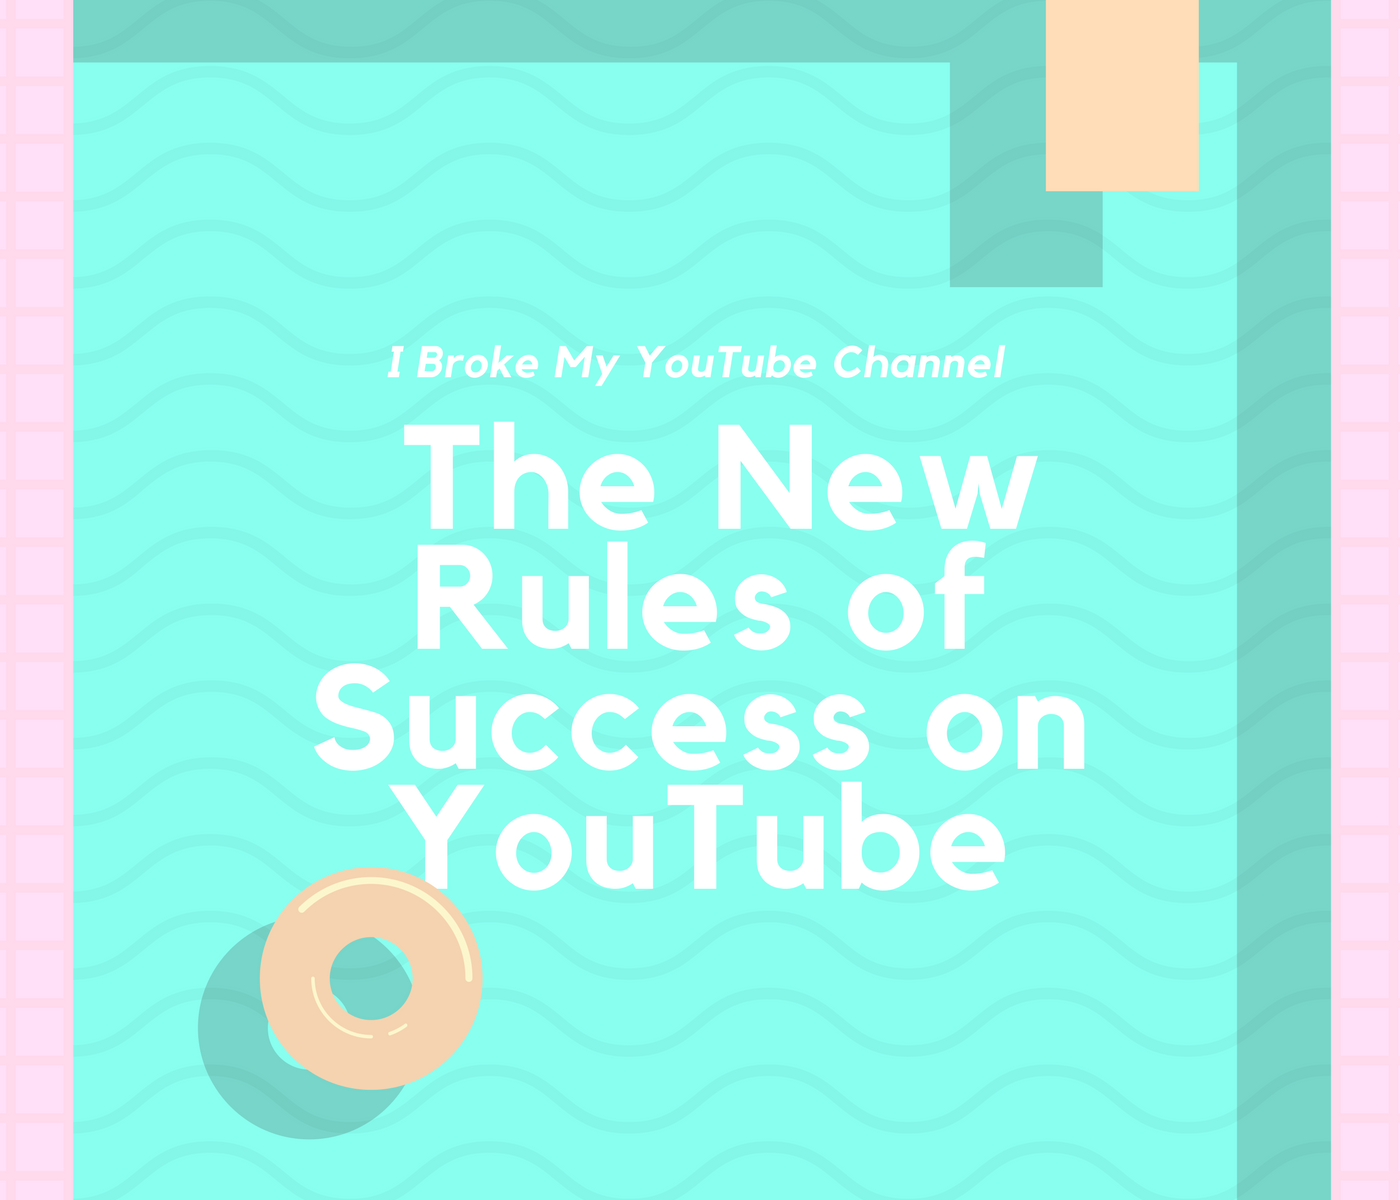 I Broke My YouTube Channel – The New Rules of Success on YouTube